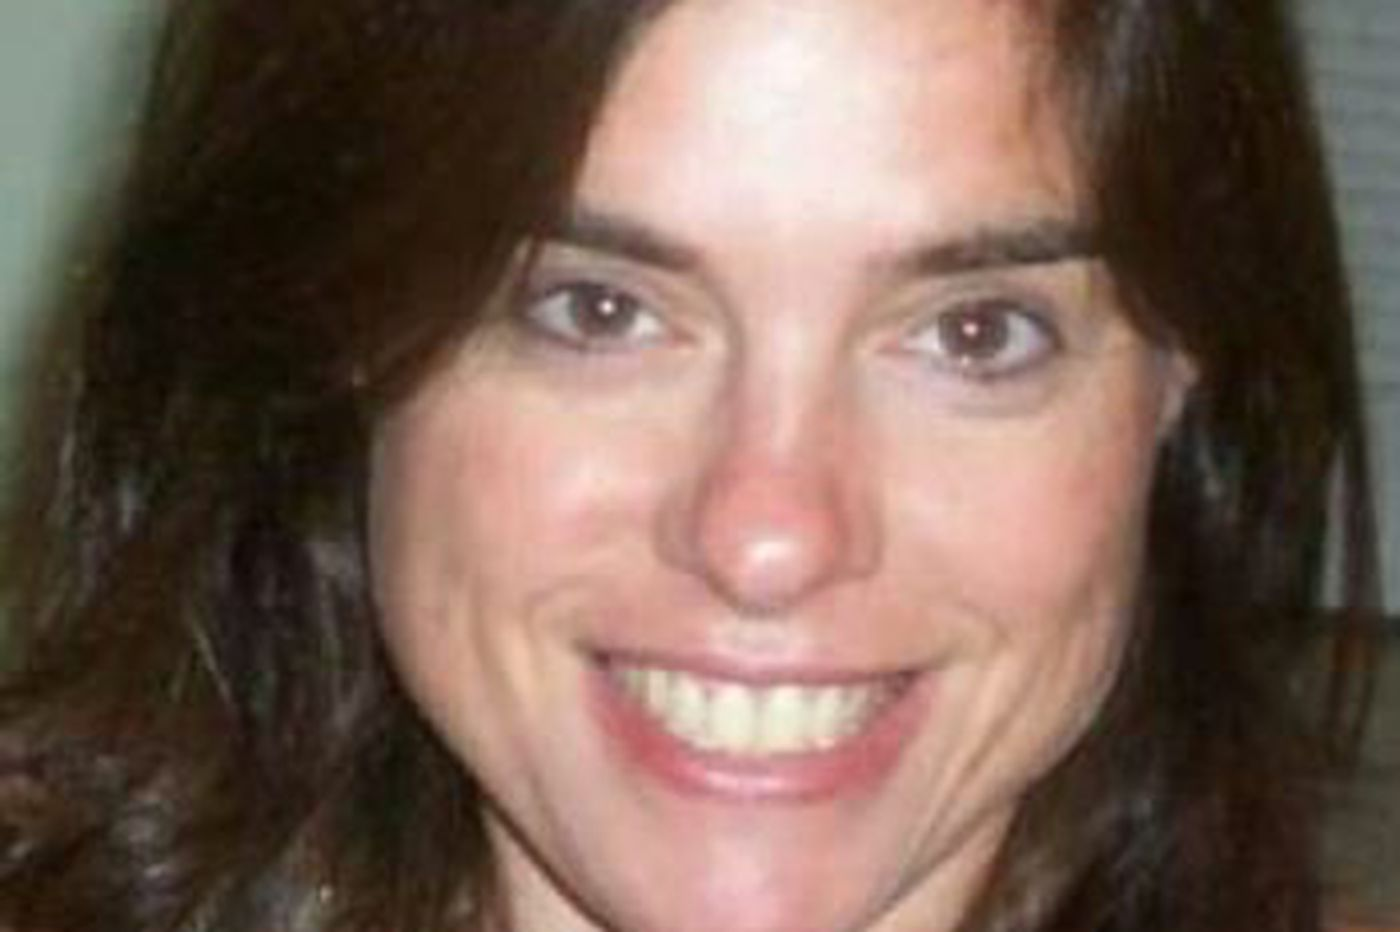 Two months after a Delaware County English teacher was found dead in a river, questions remain